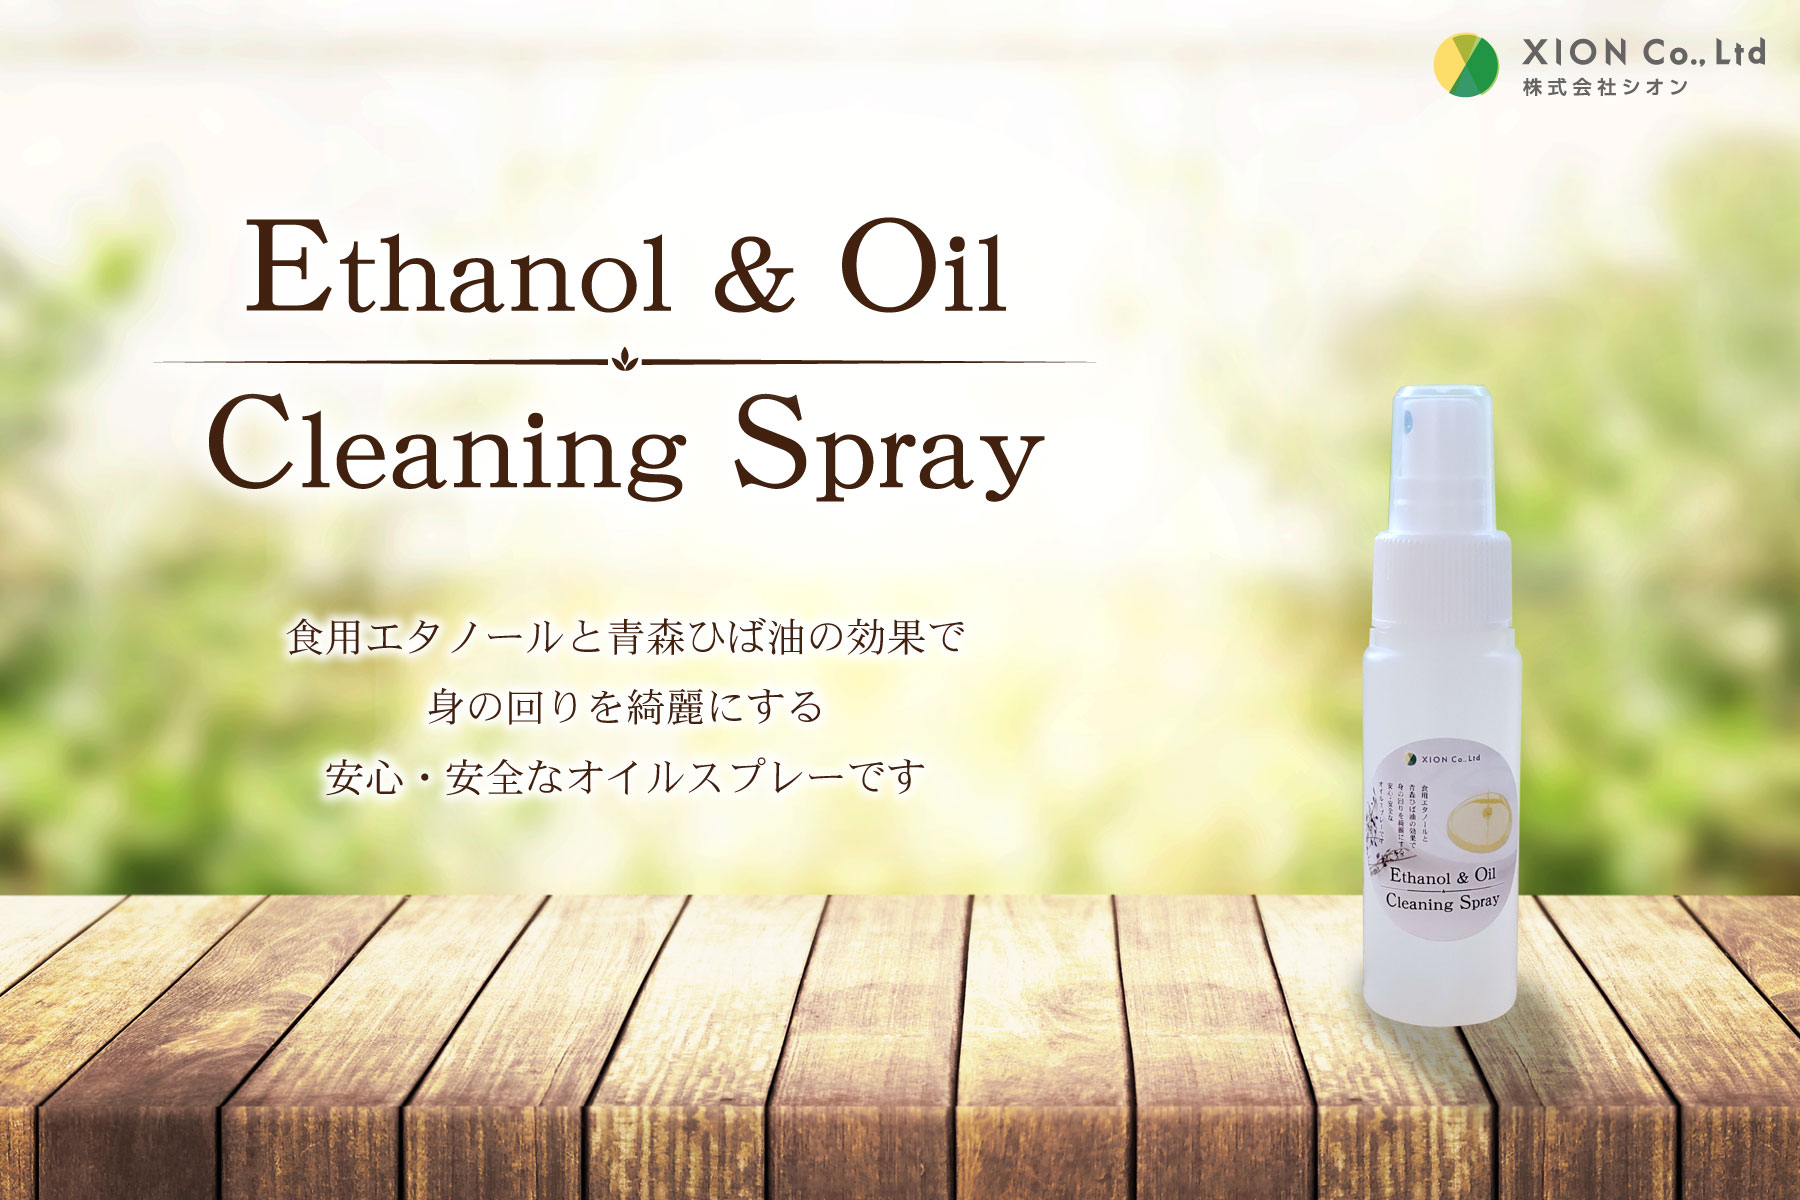 Ethanol & Oil Cleaning Spray 1